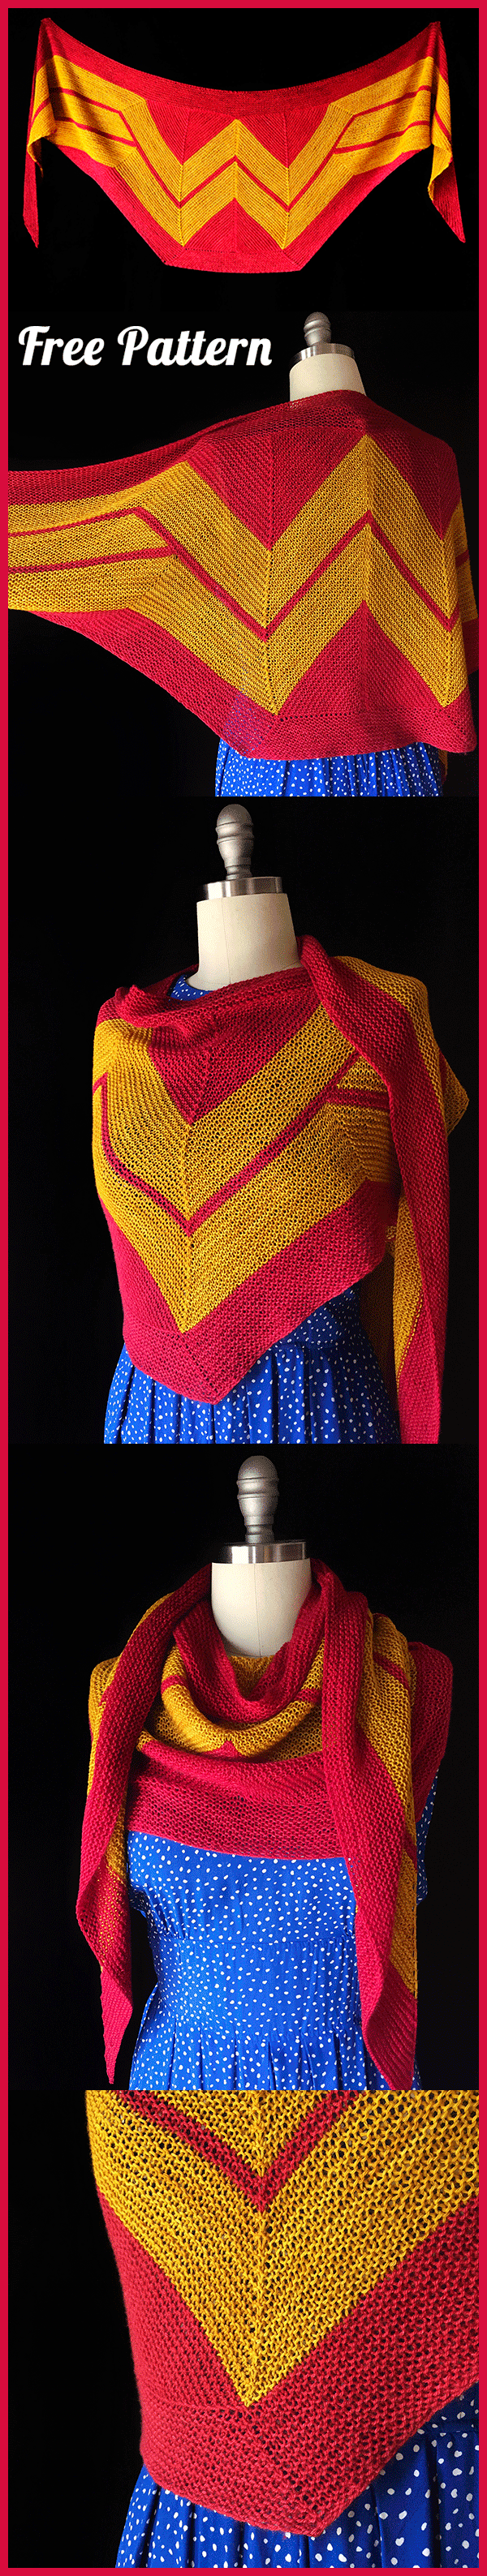 Wonder Woman Wrap Free Pattern in Crochet and Knitting | Stricken ...